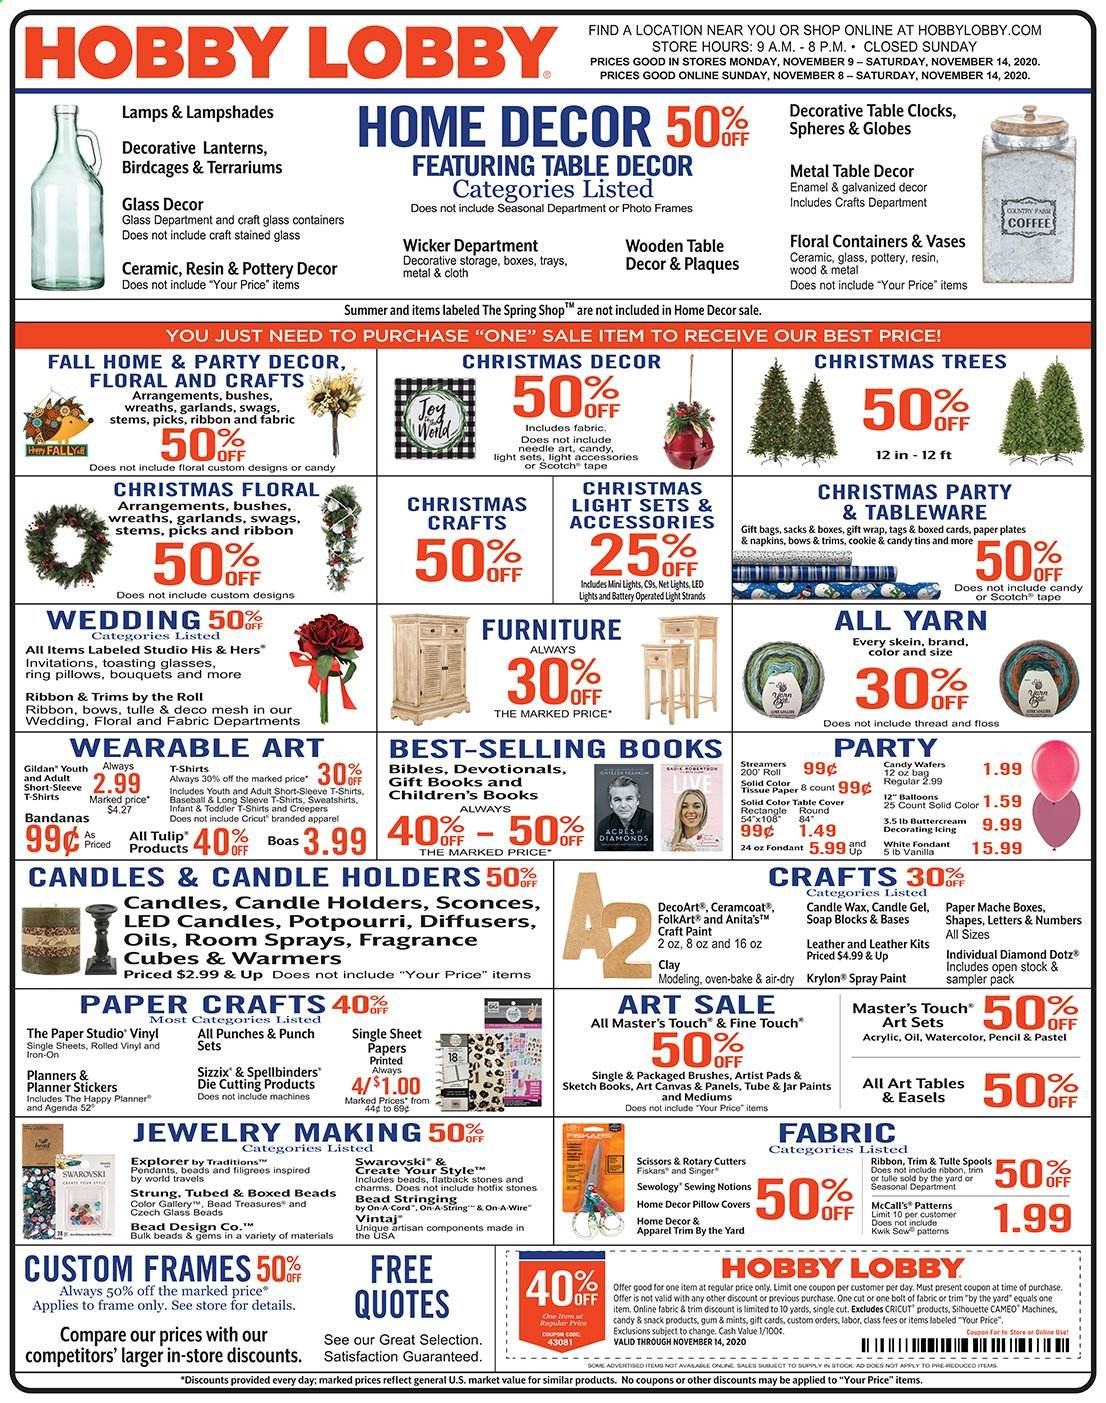 Hobby Lobby Flyer - 11.08.2020 - 11.14.2020 - Sales products - box, candle, coffee, diffuser, Fiskars, fragrance, Furniture, lamp, LED light, light set, sheet, shirt, solid, spray paint, sticker, swarovski, sweatshirt, table, tableware, tape, wafers, christmas tree, christmas decor, iron, jar, pillow, pillow cover, plate, pendant, oven, christmas lights, paper plate, candy, snack, gift wrap, gum, punch, scissors, vinyl, napkins, oil, ribbon, glasses, paint, craft, led, spring. Page 1.